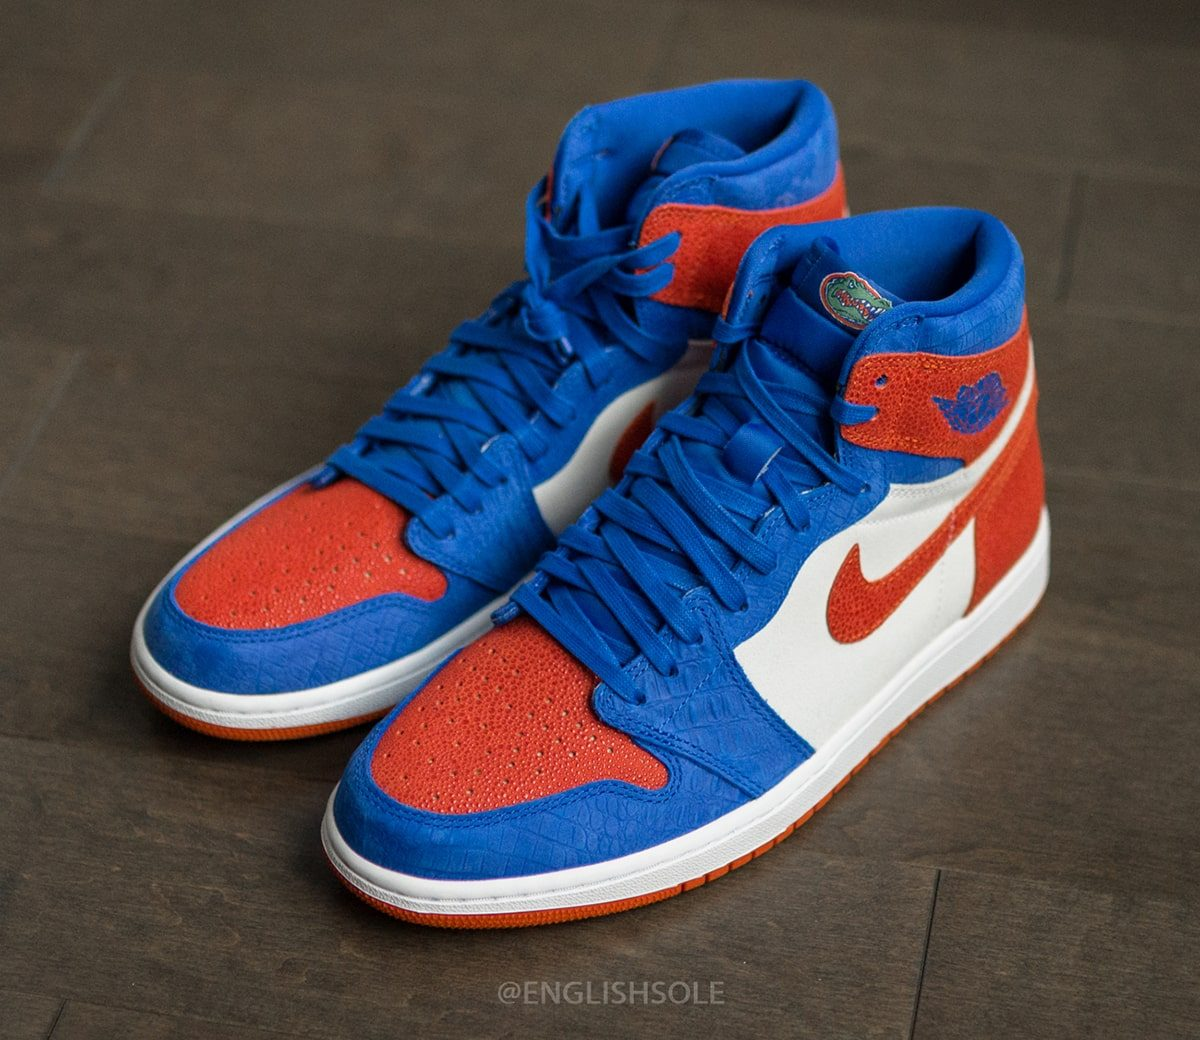 Detailed Looks at the Florida Gators Air Jordan 1 PE